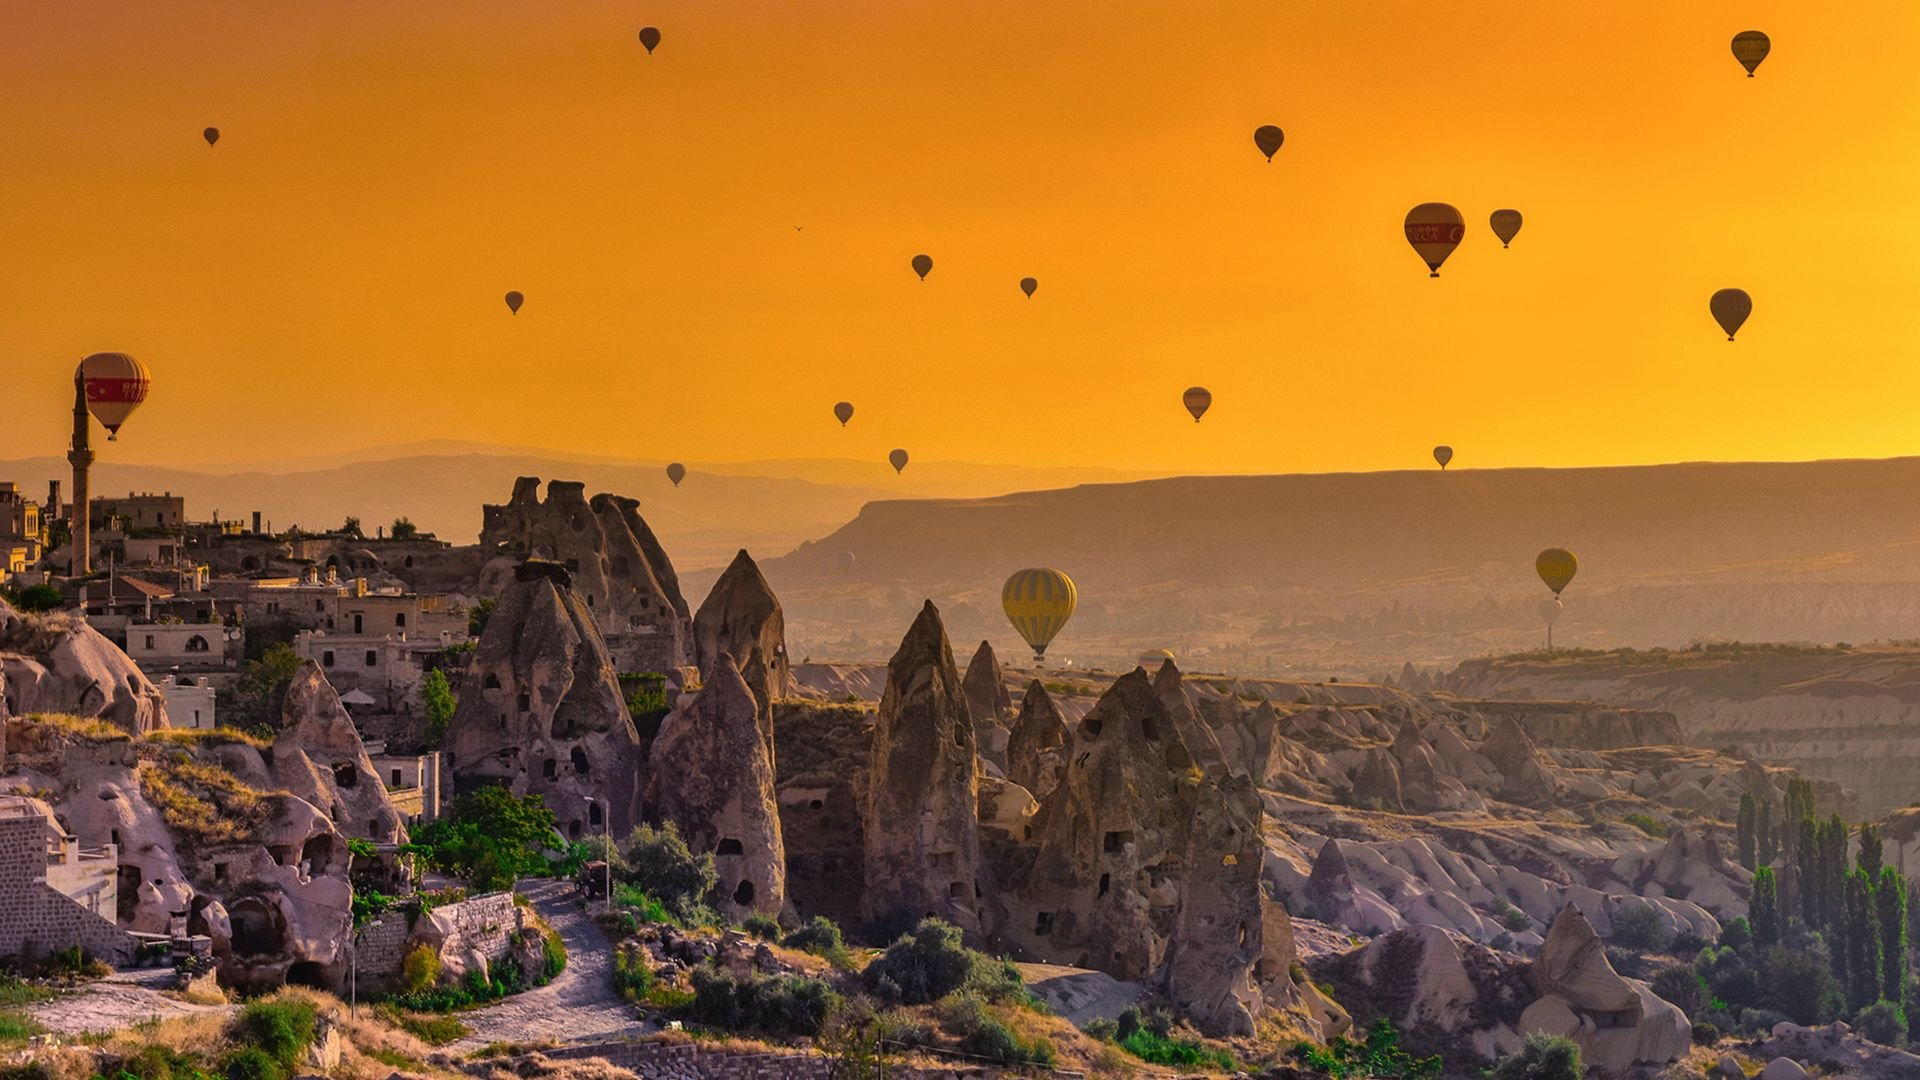 Cappadocia 4k Wallpapers For Your Desktop Or Mobile Screen Free And Easy To Download